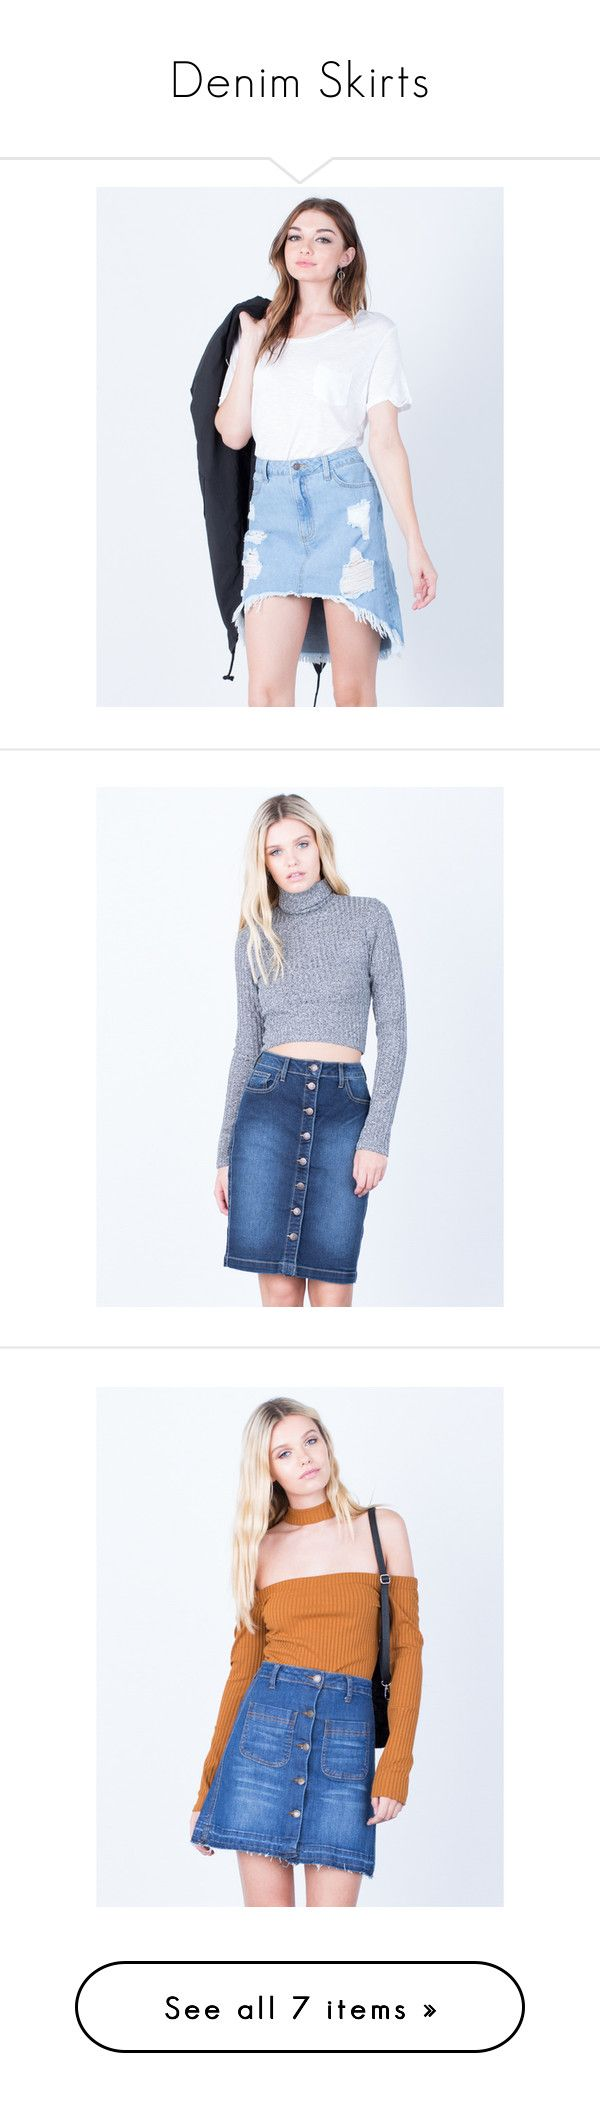 """Denim Skirts"" by shop2020ave ❤ liked on Polyvore featuring denimskirts, skirts, zipper skirt, ripped skirt, button front skirt, button front denim skirt, ripped denim skirt, denim button up skirt, button-front denim skirts and knee length denim pencil skirt"